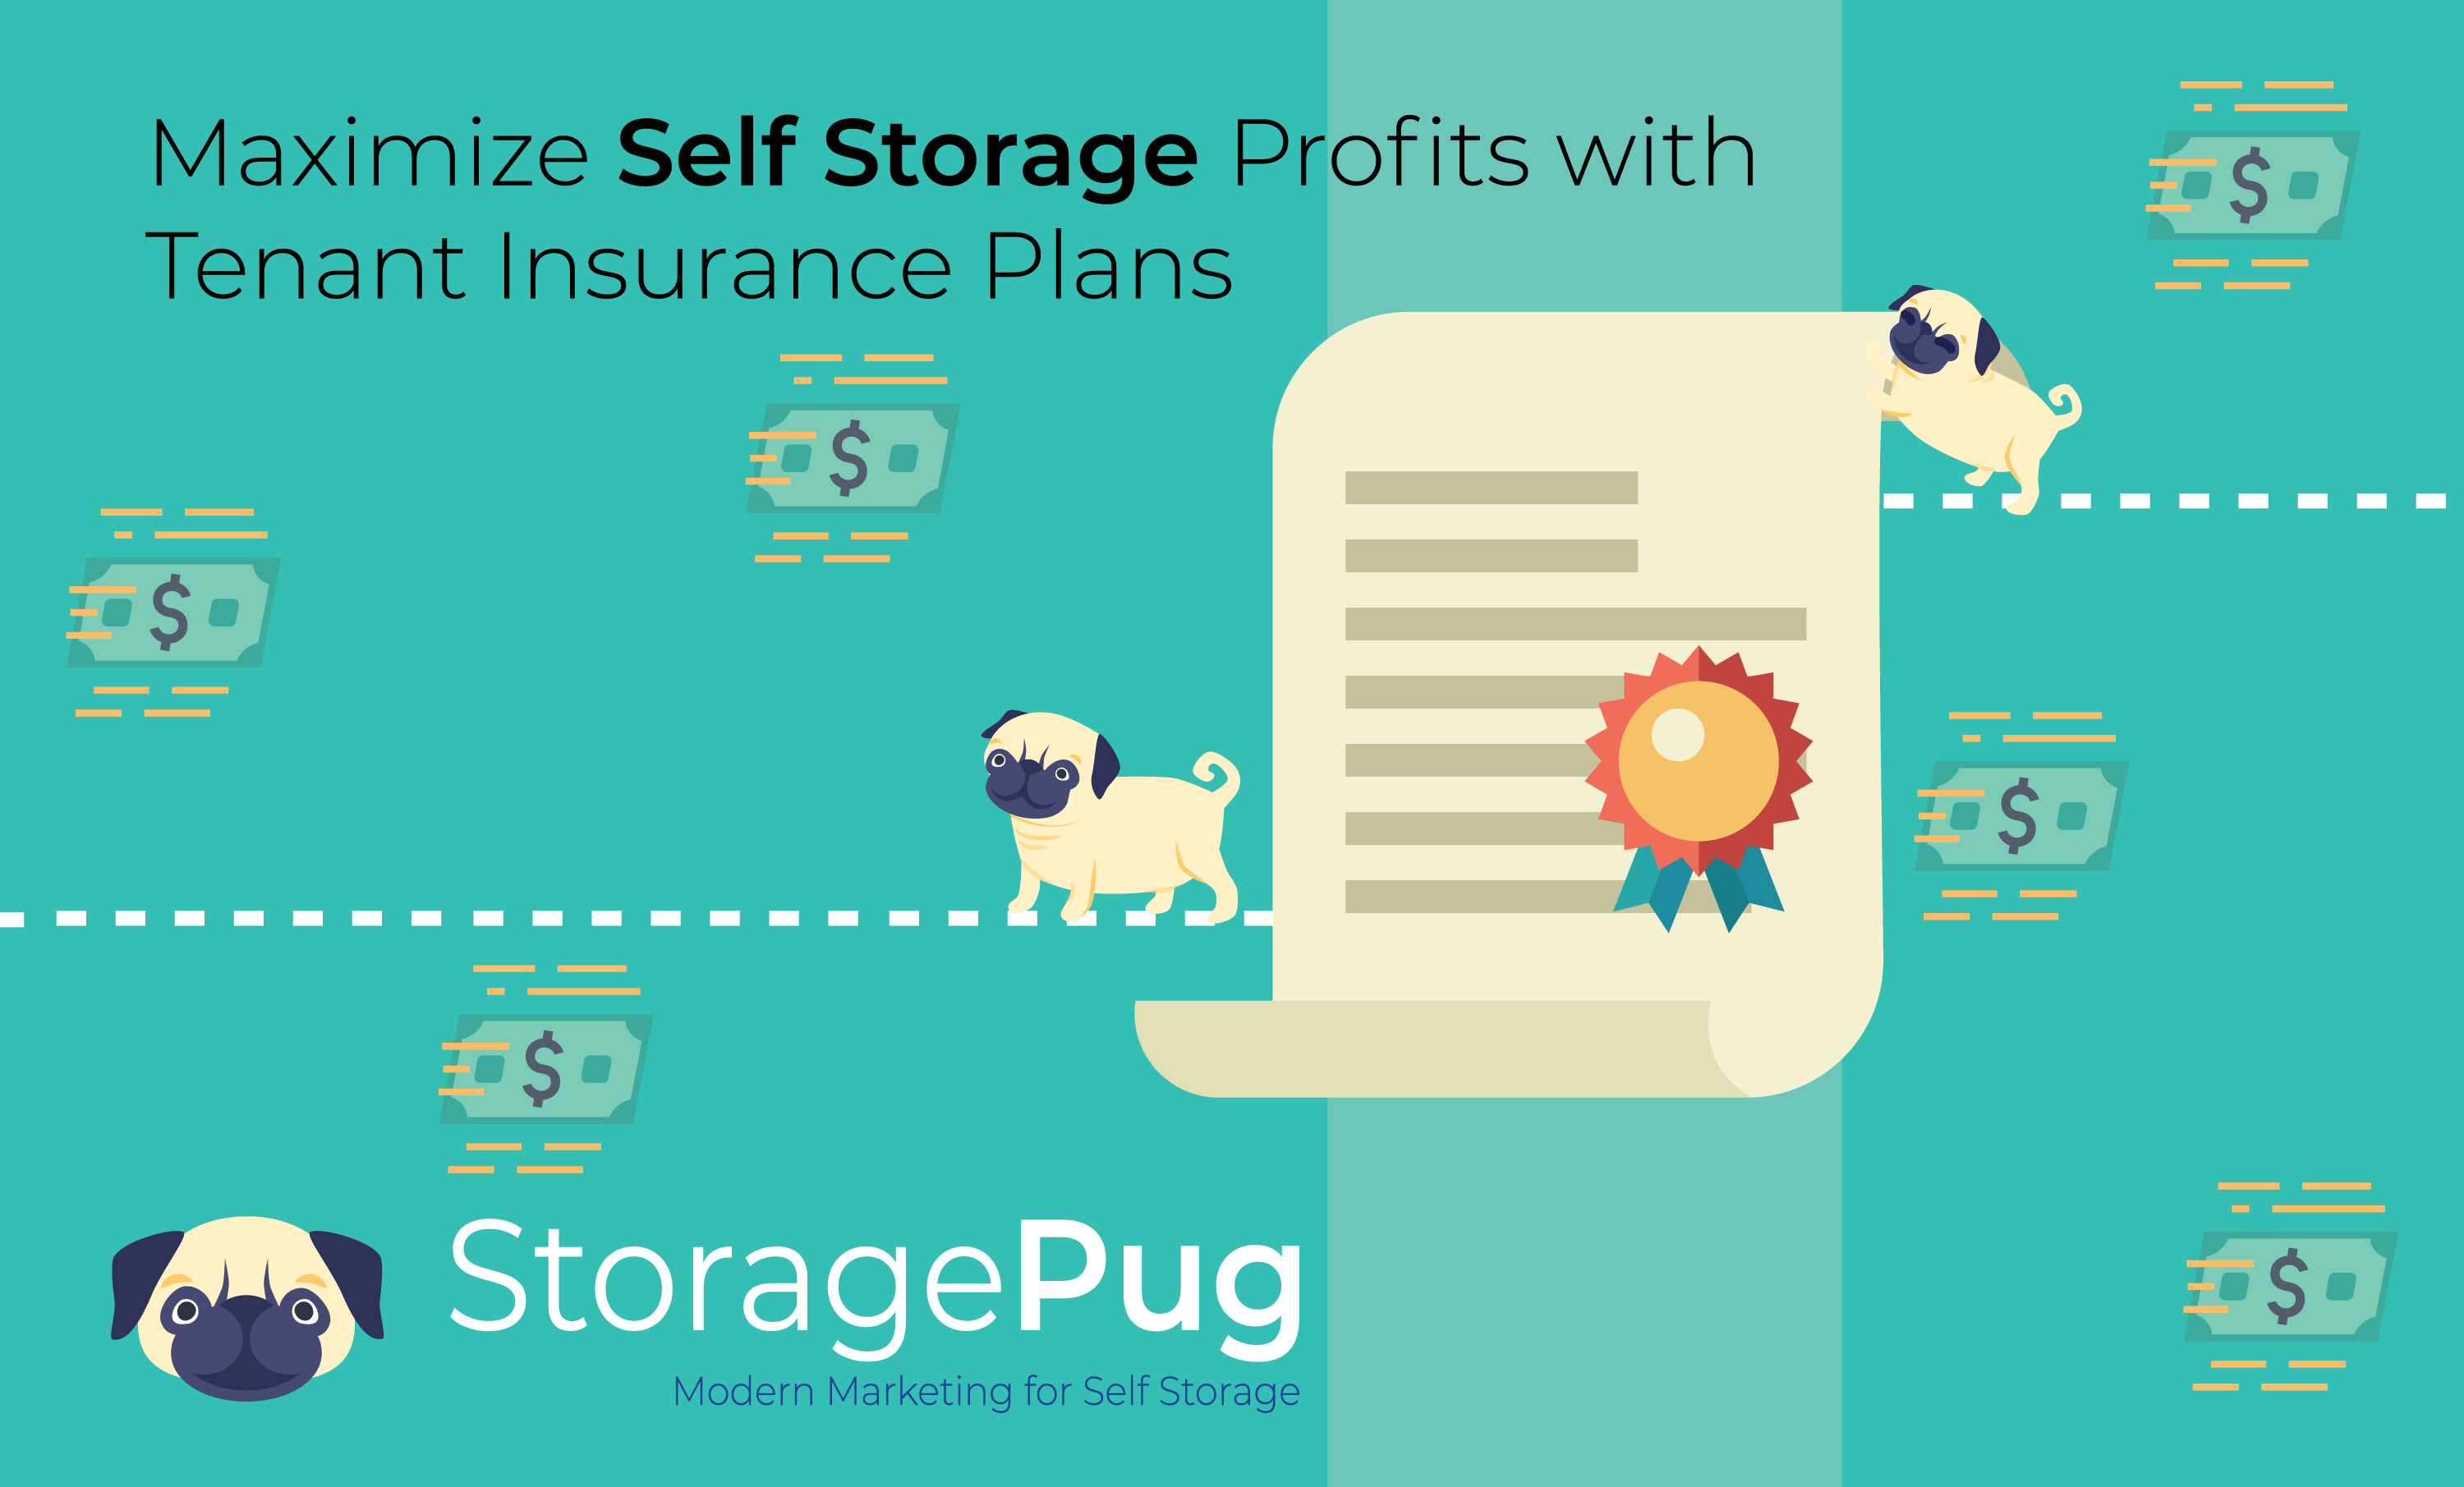 Maximize Self Storage Profits with Tenant Insurance Plans